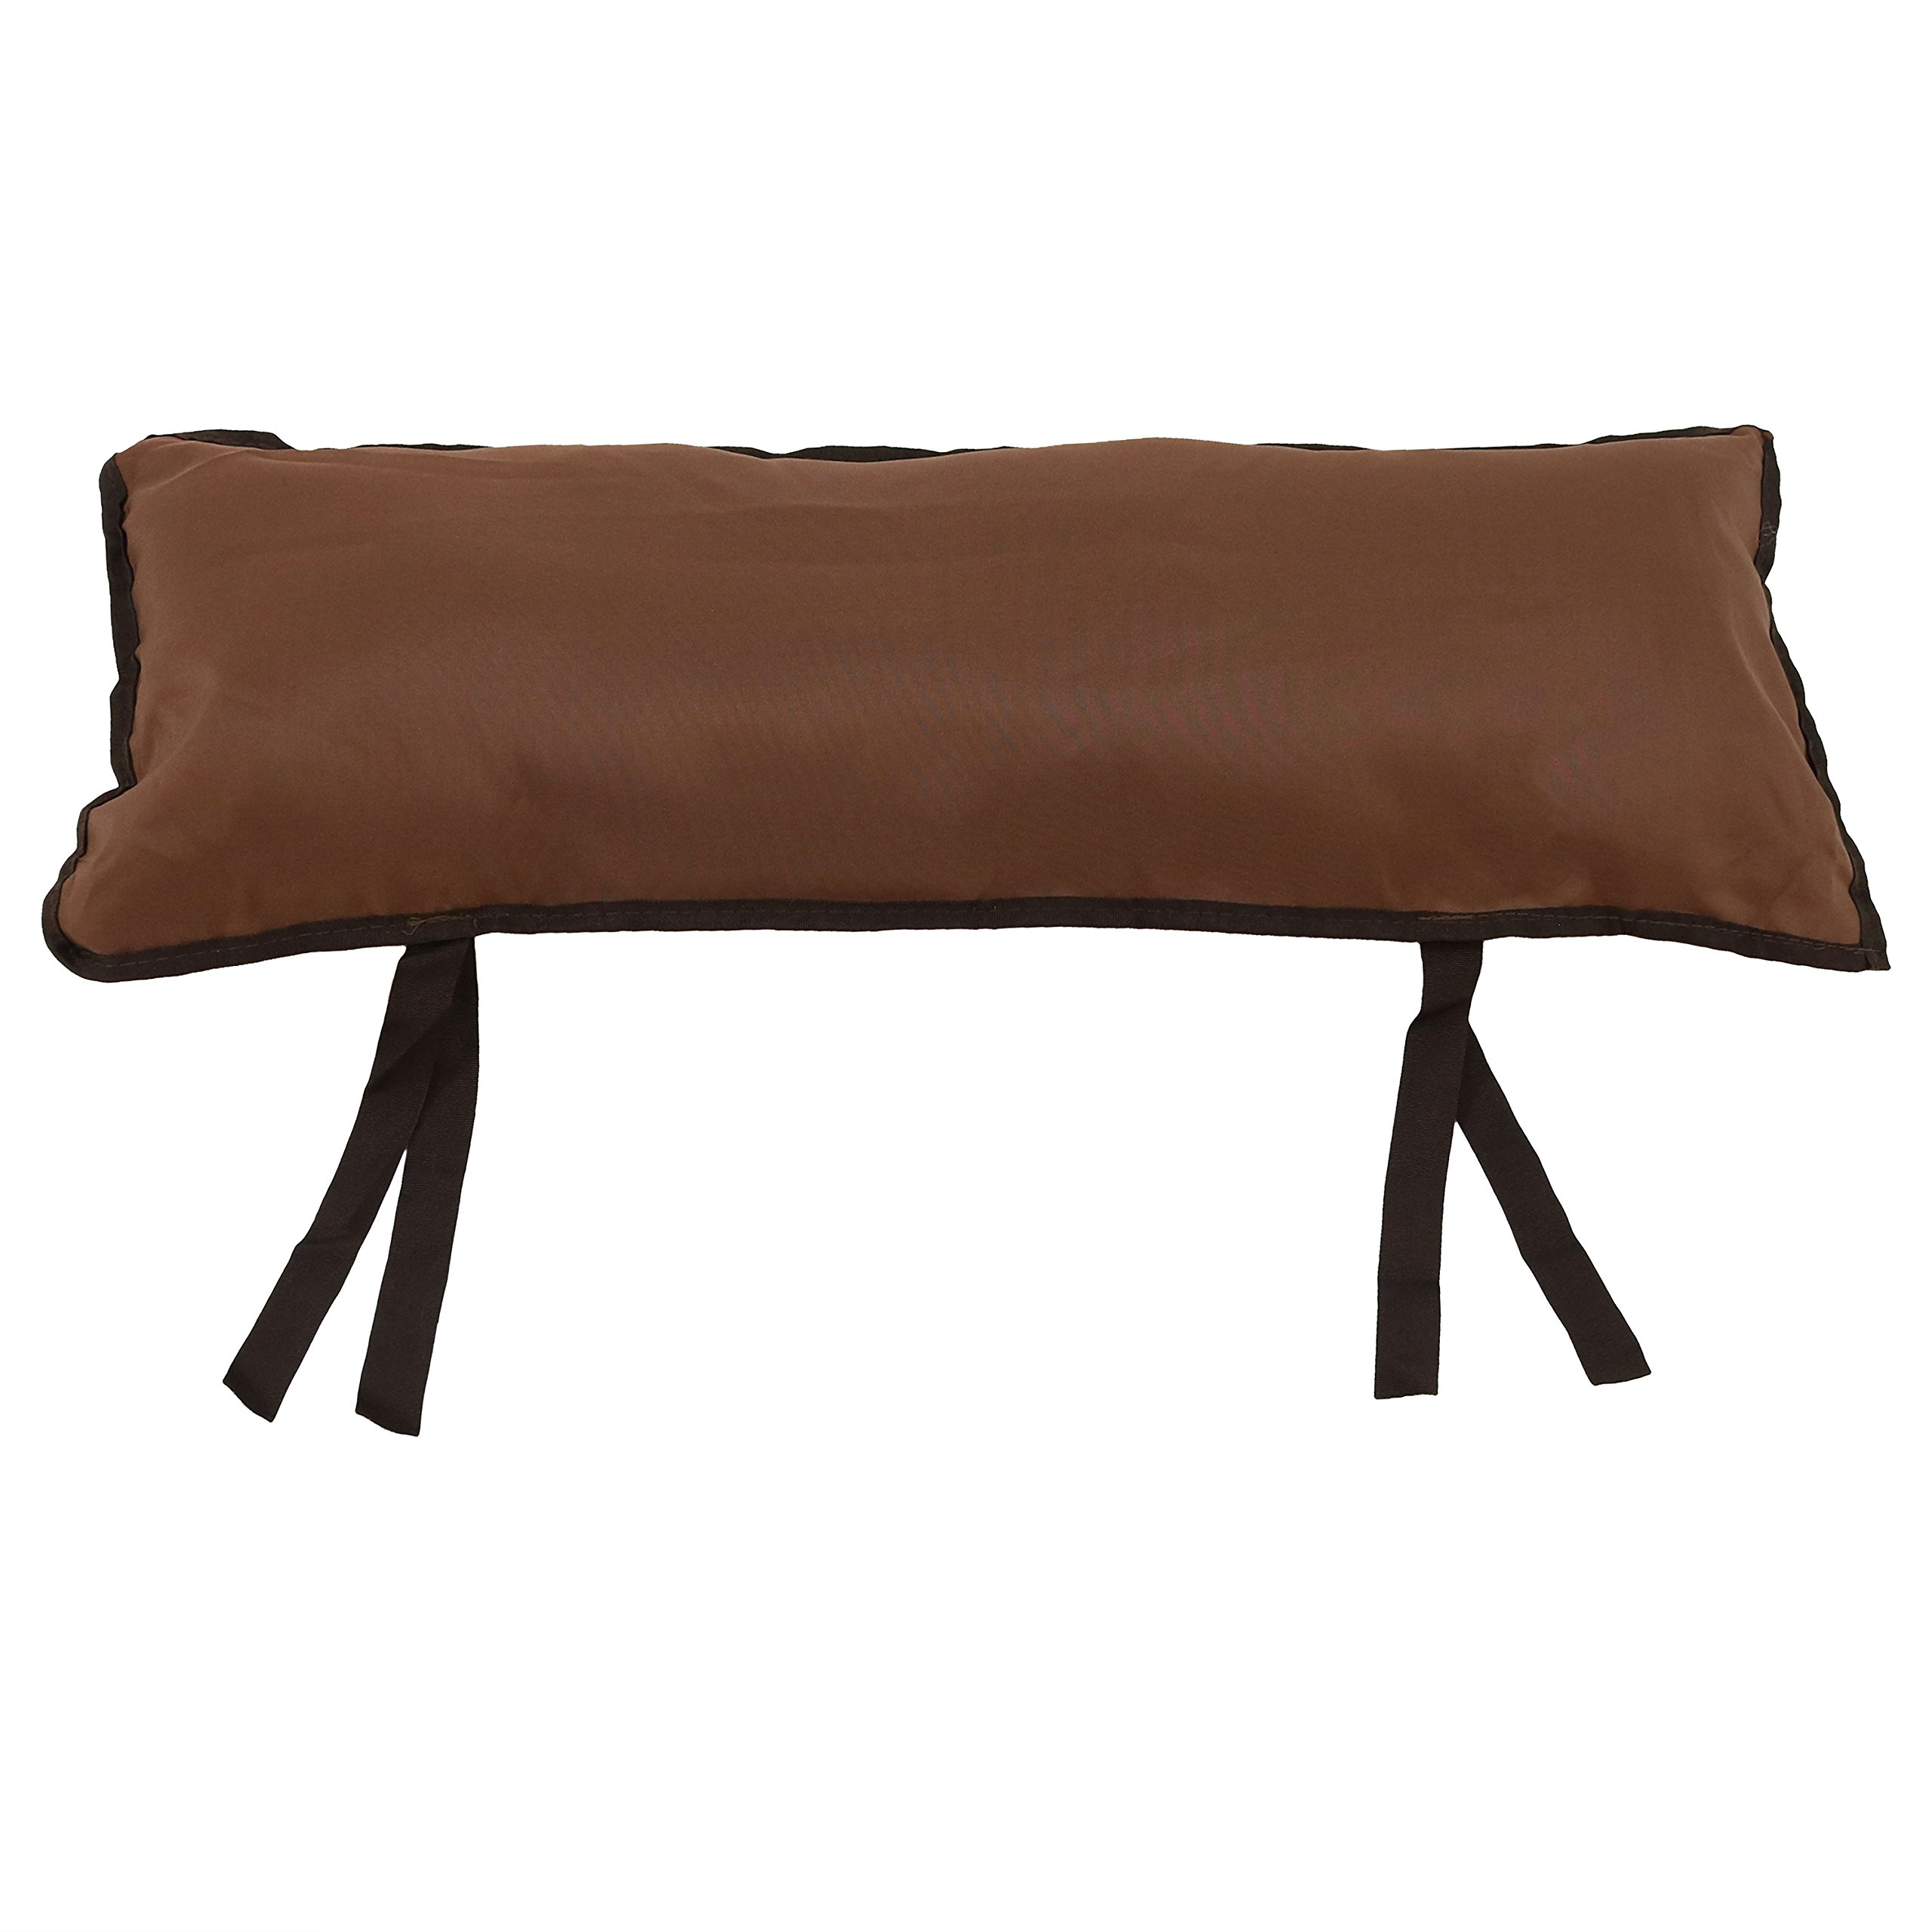 Sunnydaze Large Hammock Pillow with Ties, Outdoor Camping Pillow, Weather Resistant, Walnut